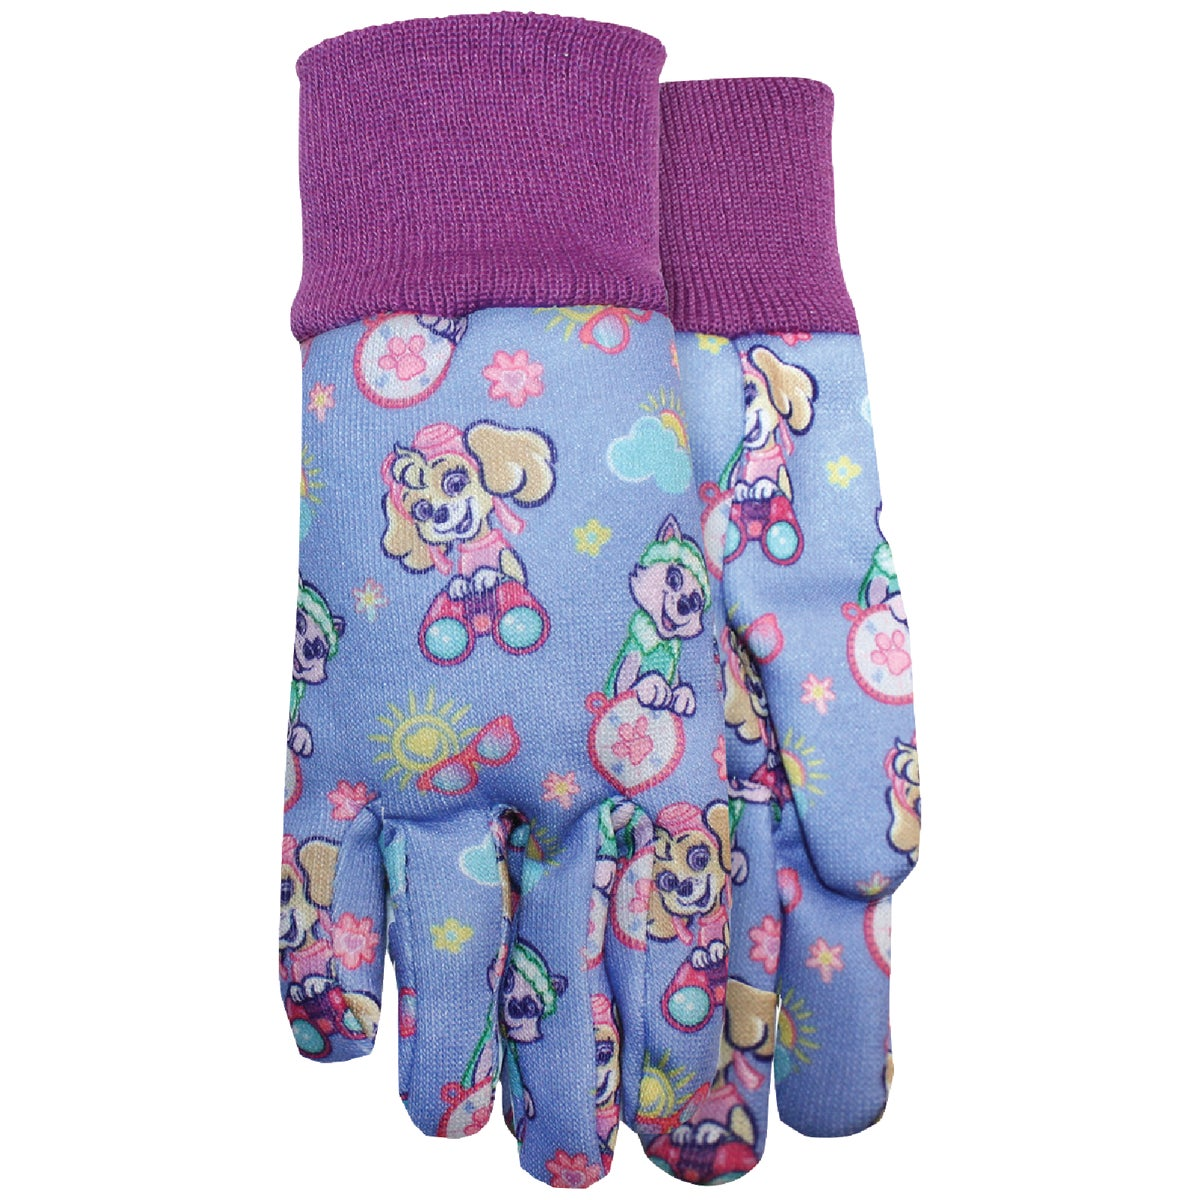 PRINCESS JERSEY GLOVE